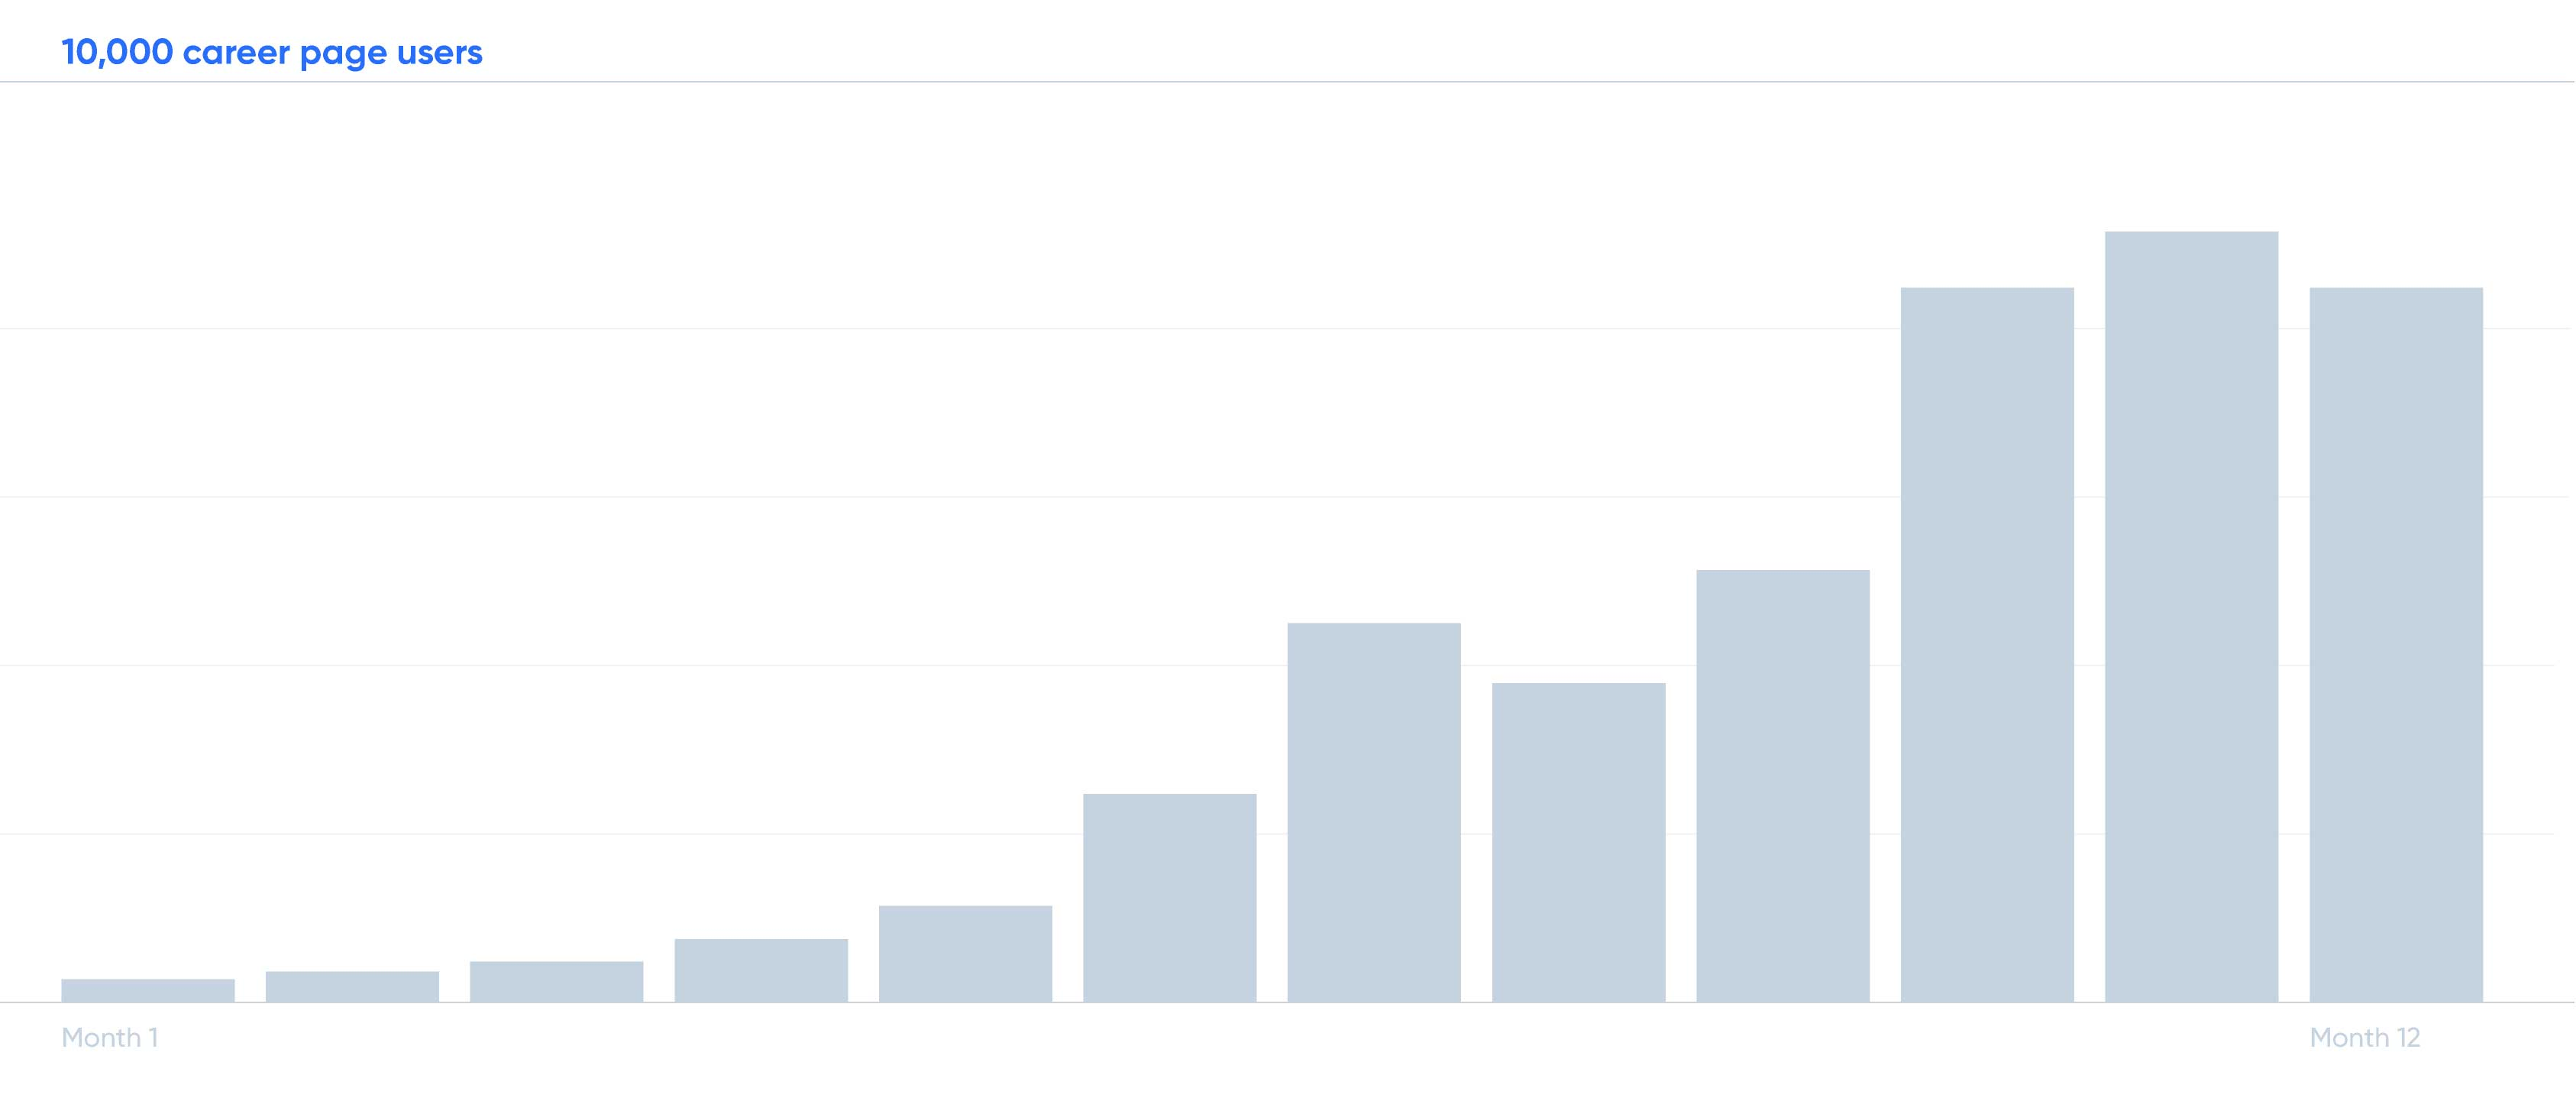 adswizz-career-page